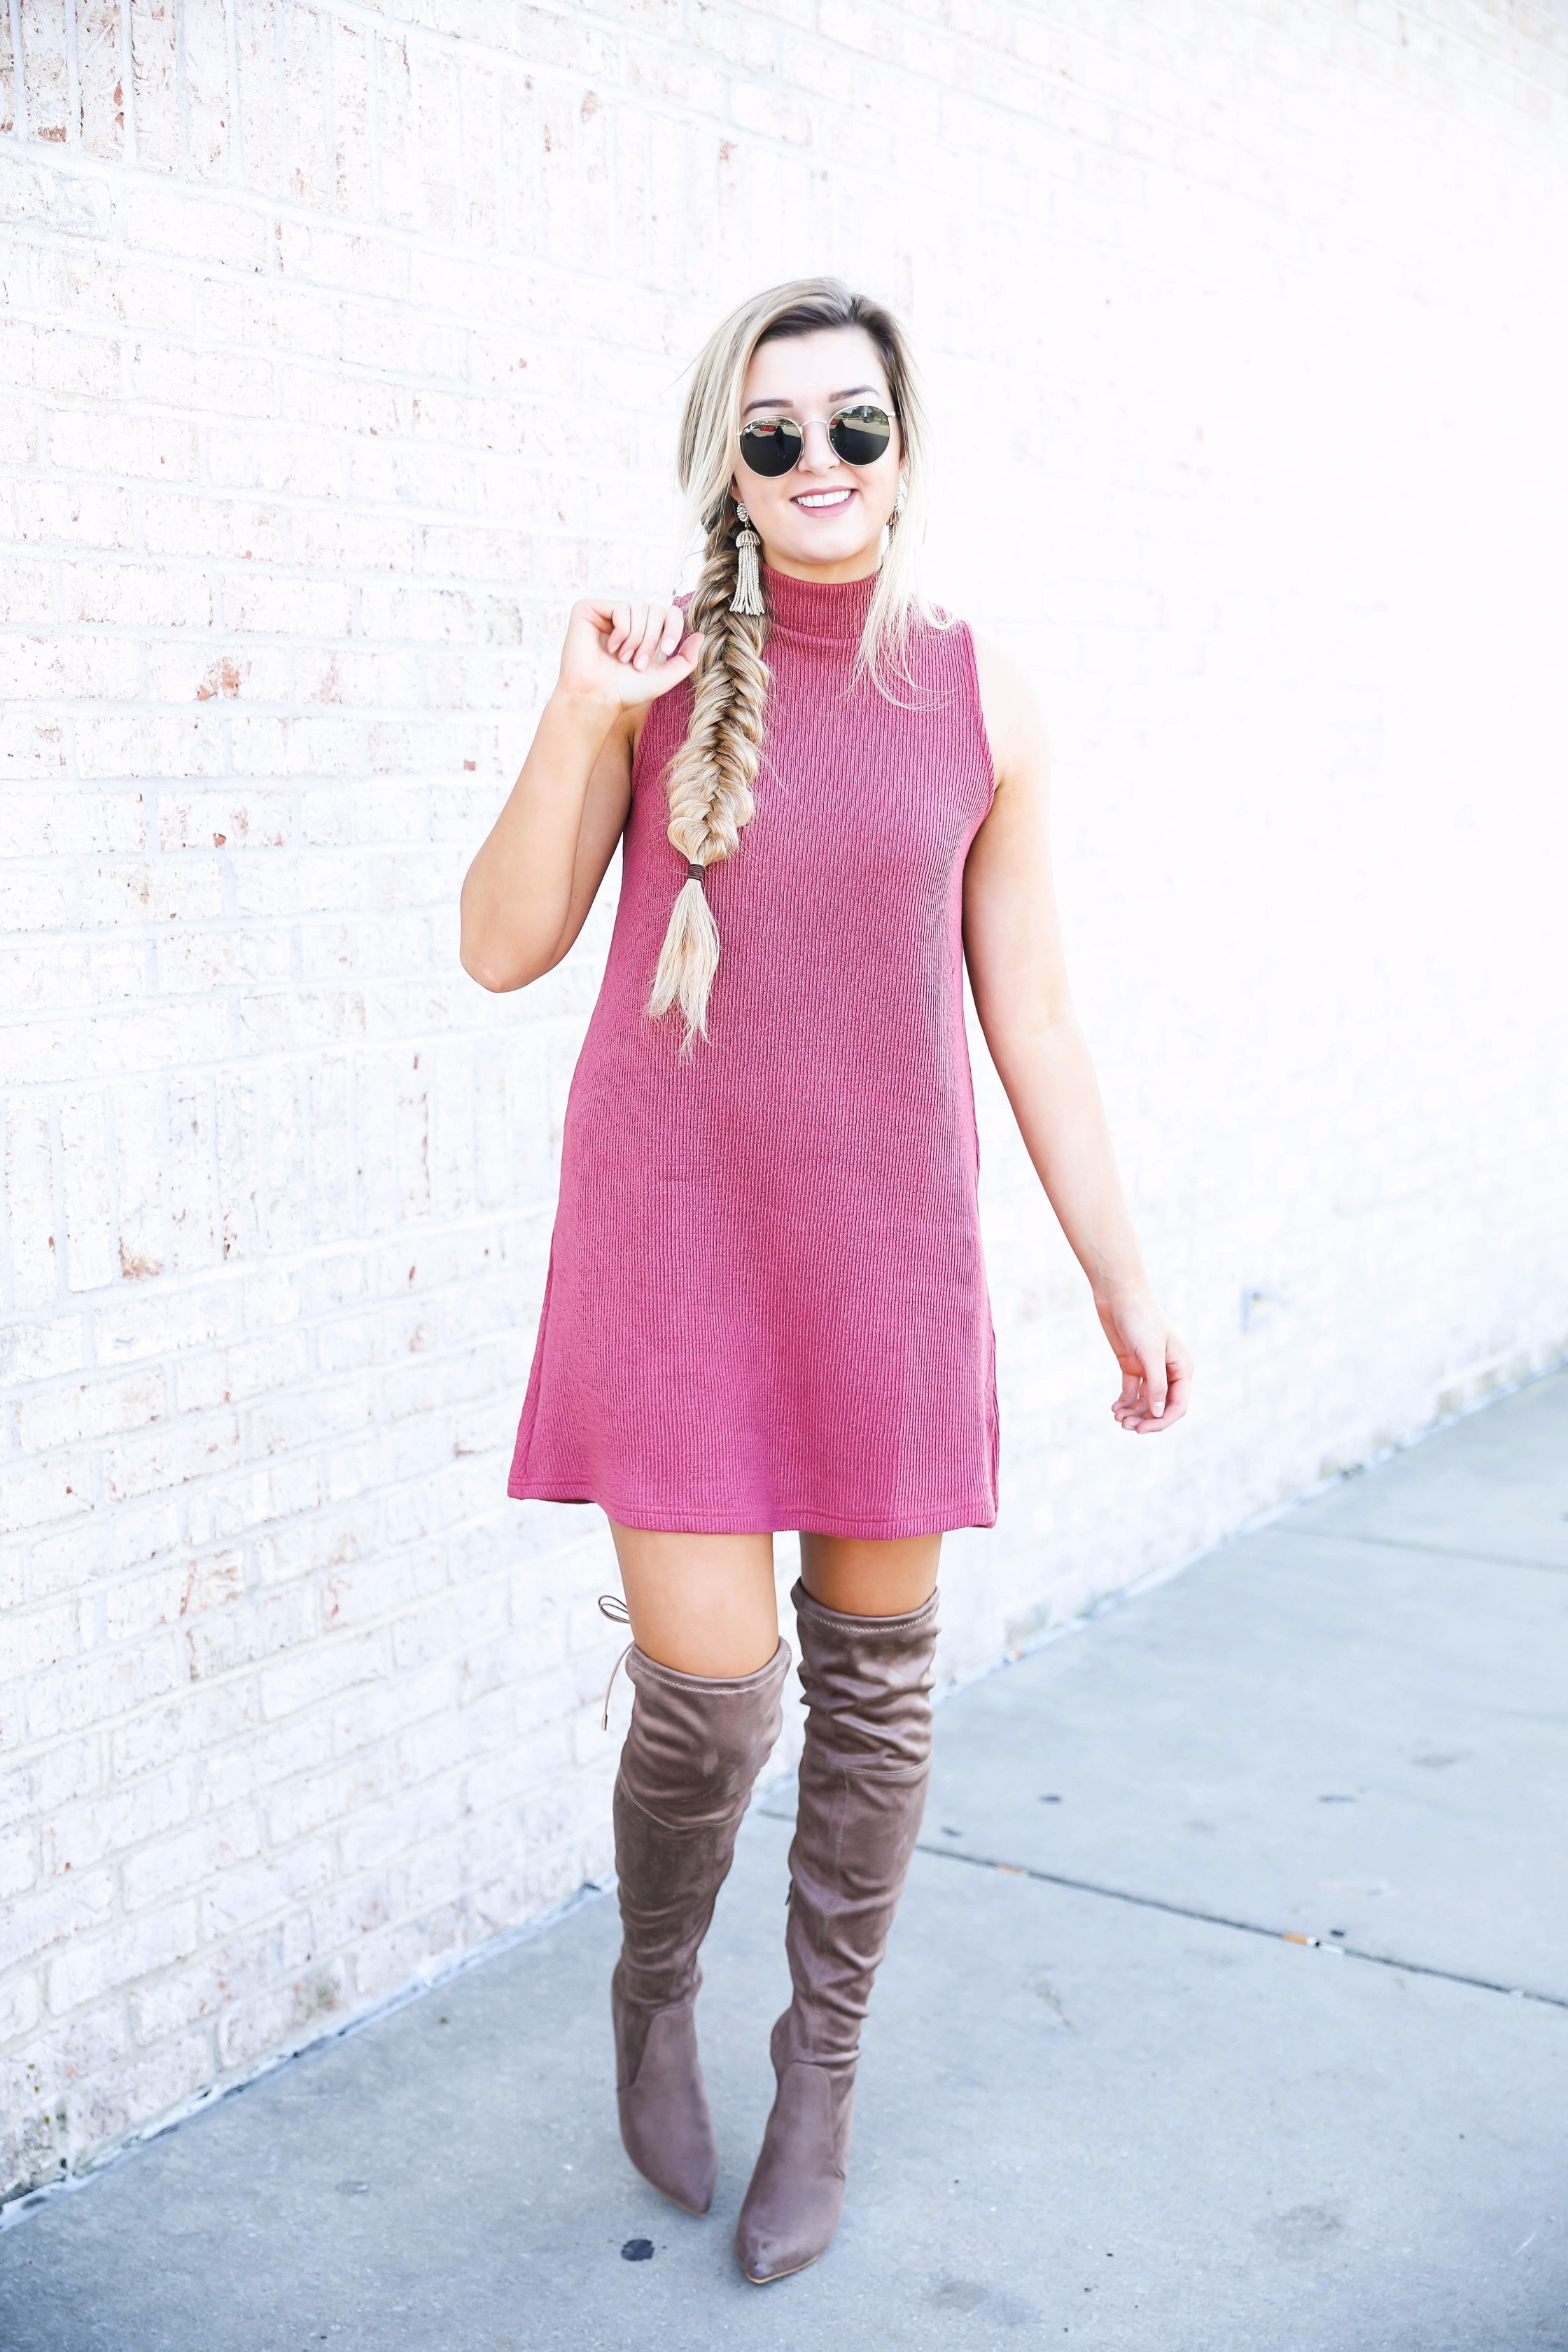 Red Dress Boutique sweater dress paired with suede over the knee boots! Cutest fall look on fashion blog daily dose of charm by lauren lindmark